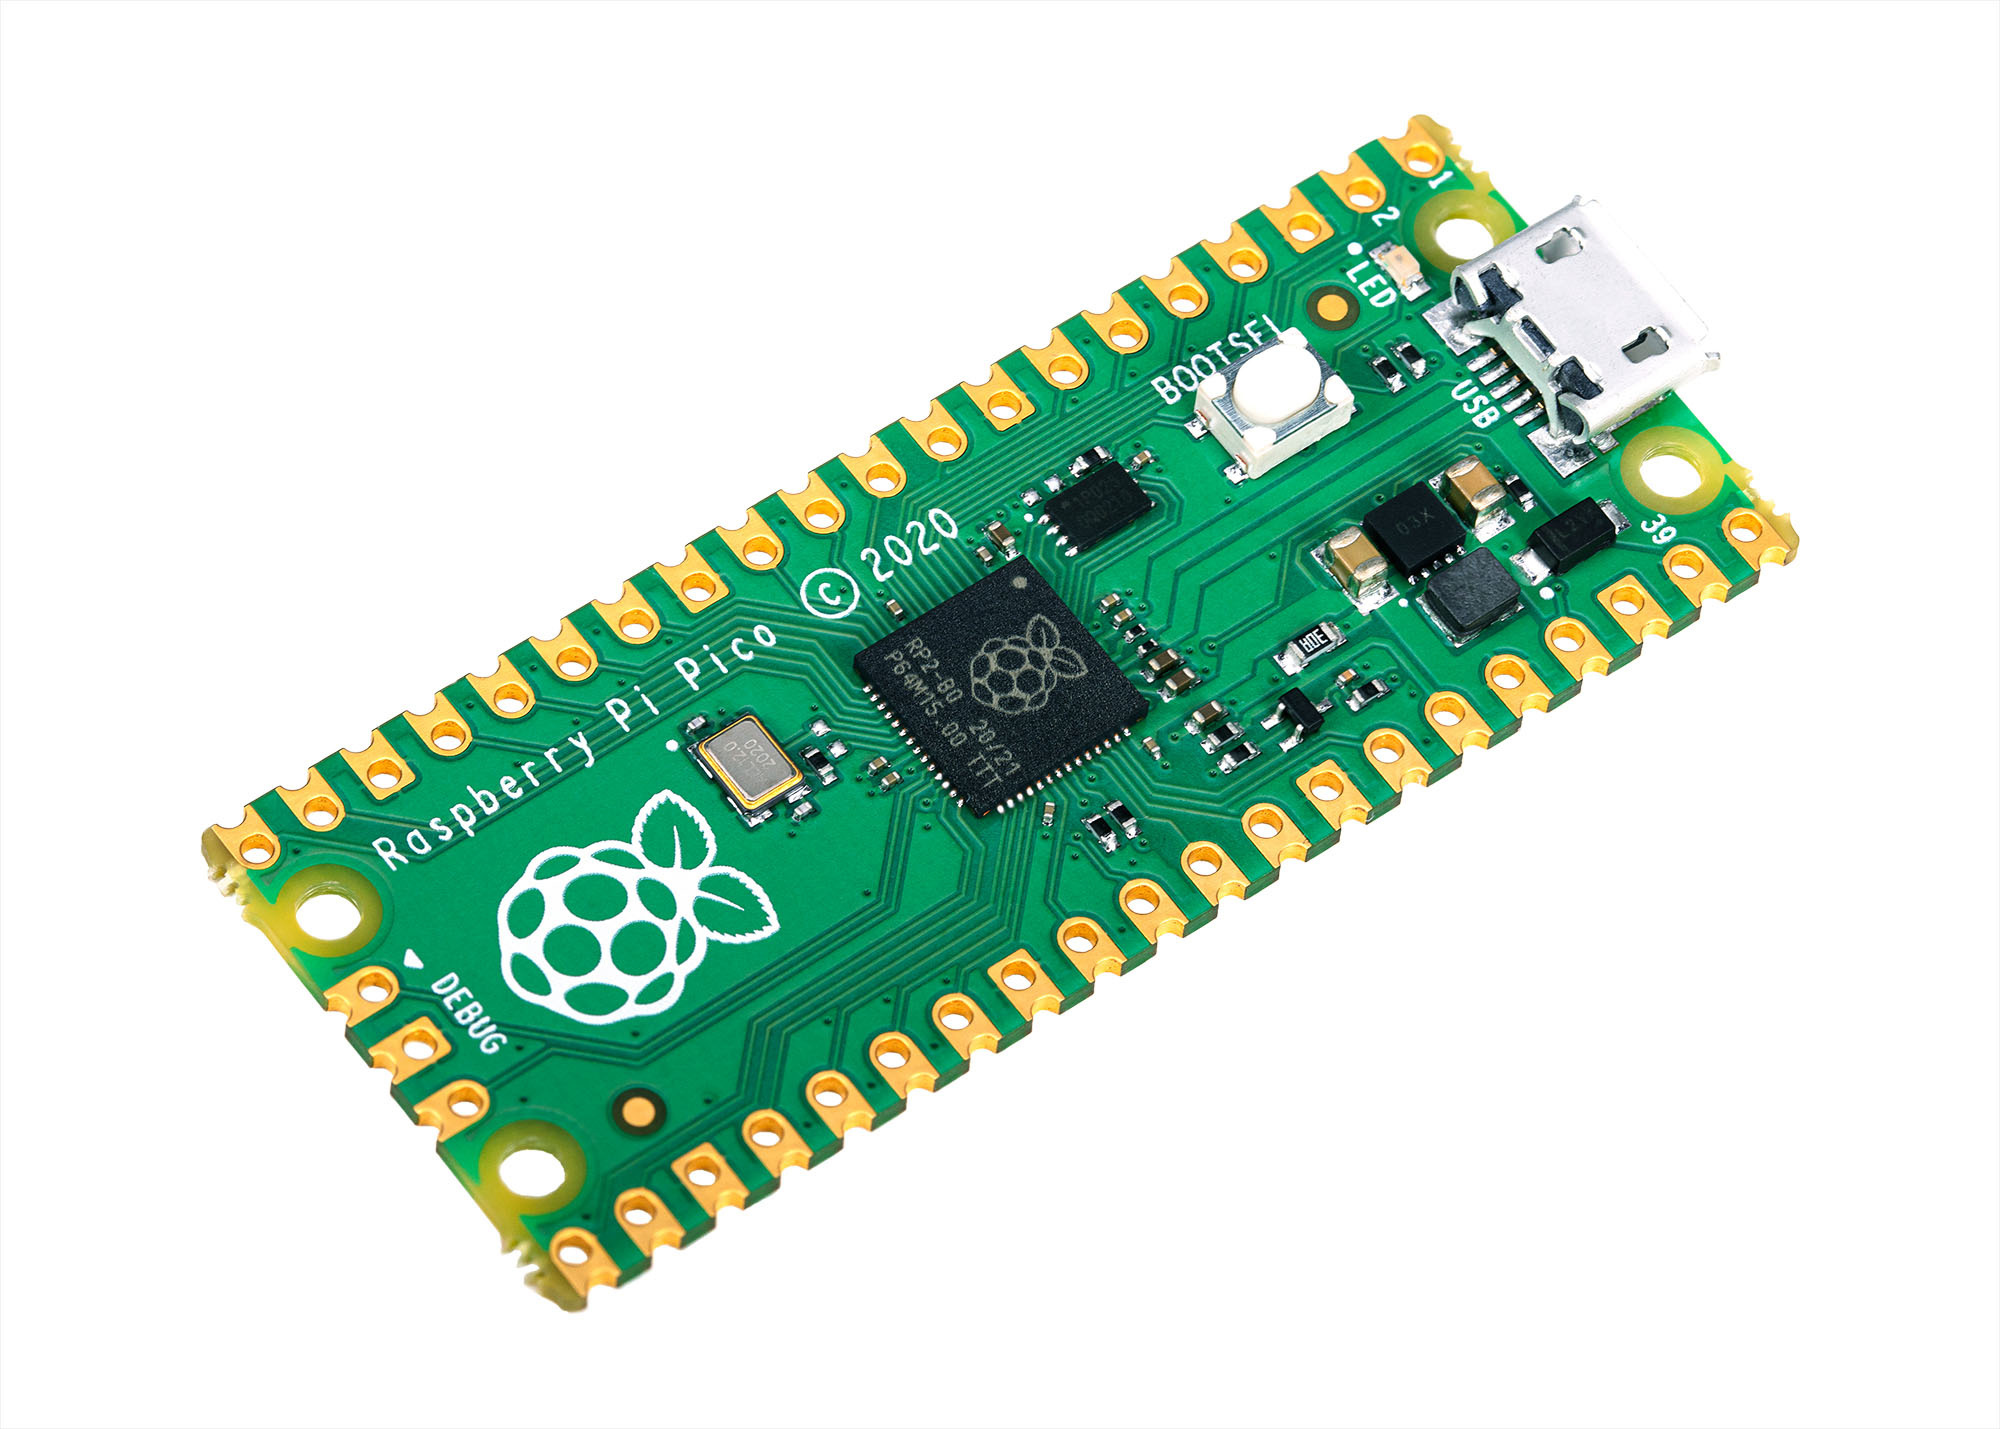 Raspberry Pi Pico, Rasperry Pi Foundation